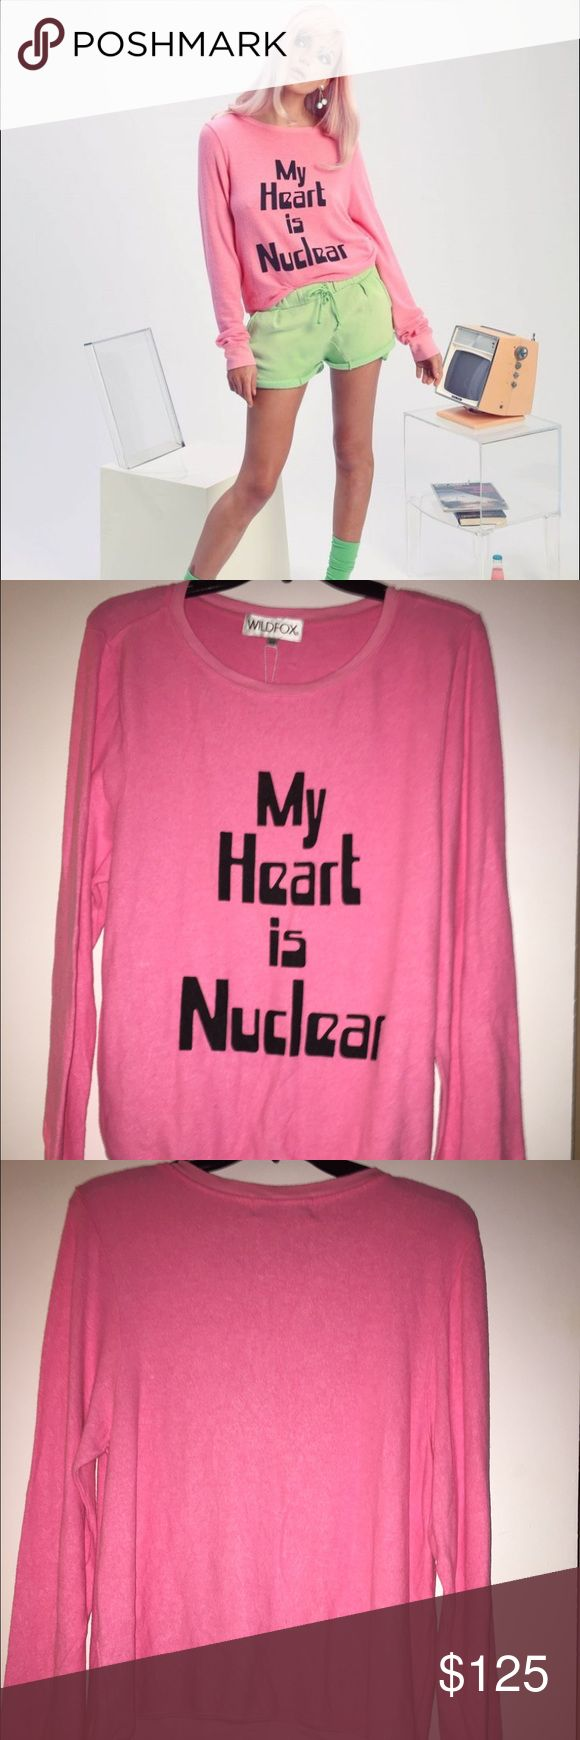 🆕 Wildfox 'My Heart is Nuclear' pink BBJ XS & M NWT Wildfox Couture 'My Heart is Nuclear' pink baggy beach jumper sizes XS & M available. From the 2015 Wildfox Girls of Beverly Hills Collection. Please view all photos and ask any questions you may have prior to purchasing. 💗   ❌No Trades❌ Wildfox Tops Sweatshirts & Hoodies